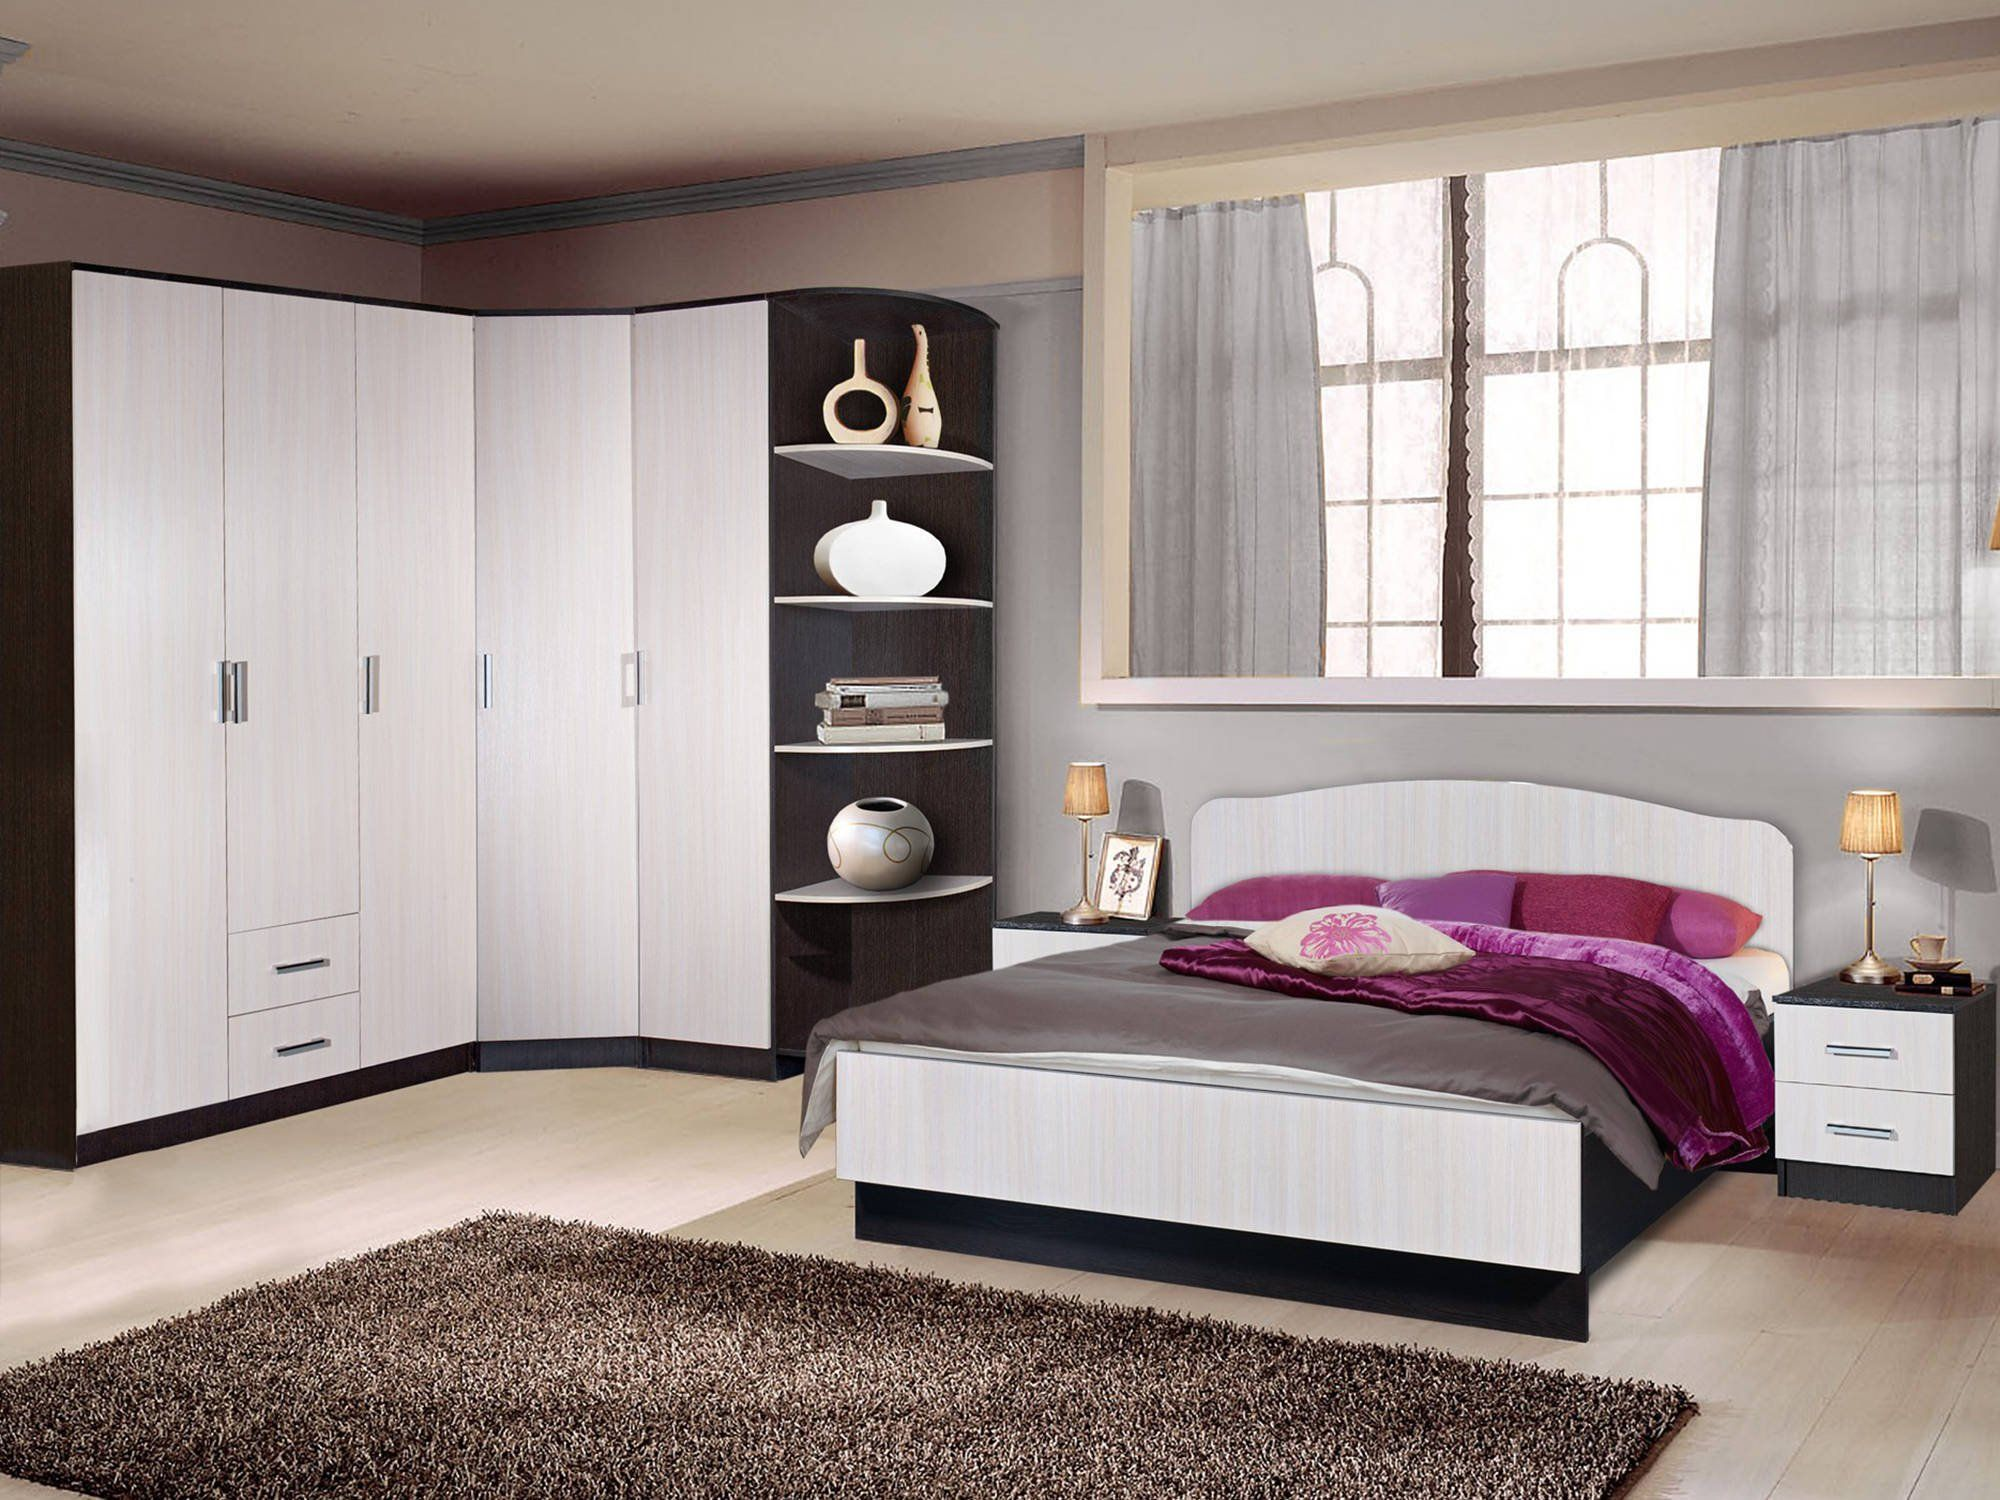 Casual L-shaped furniture design in contemporary bedroom